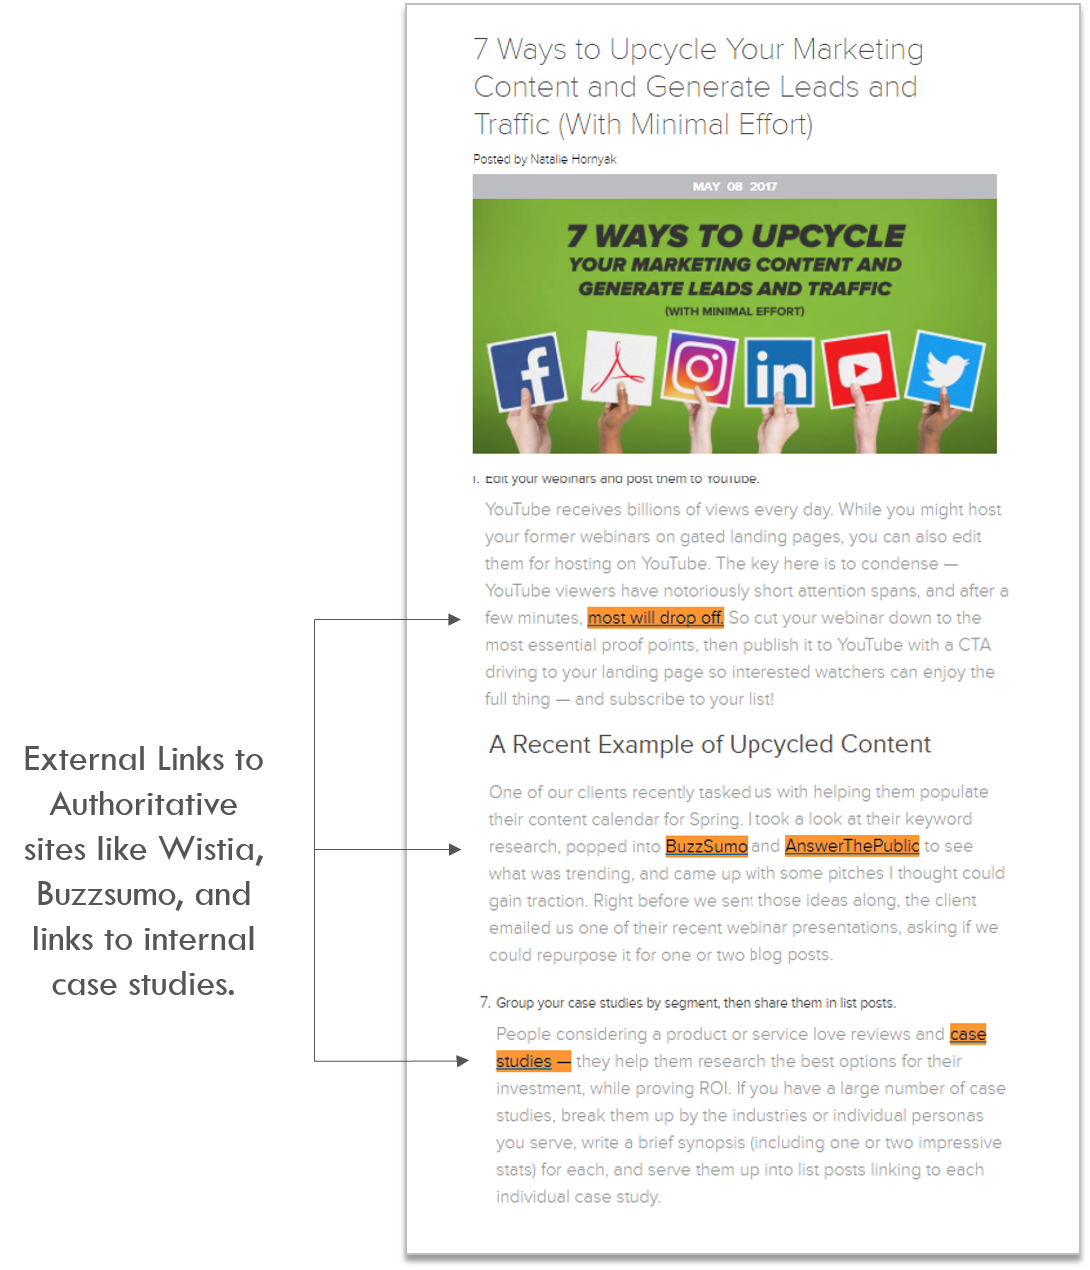 seo content writing tips 17 insanely actionable seo copywriting tips that you can use right now   structure of your content is just as important as the writing itself.